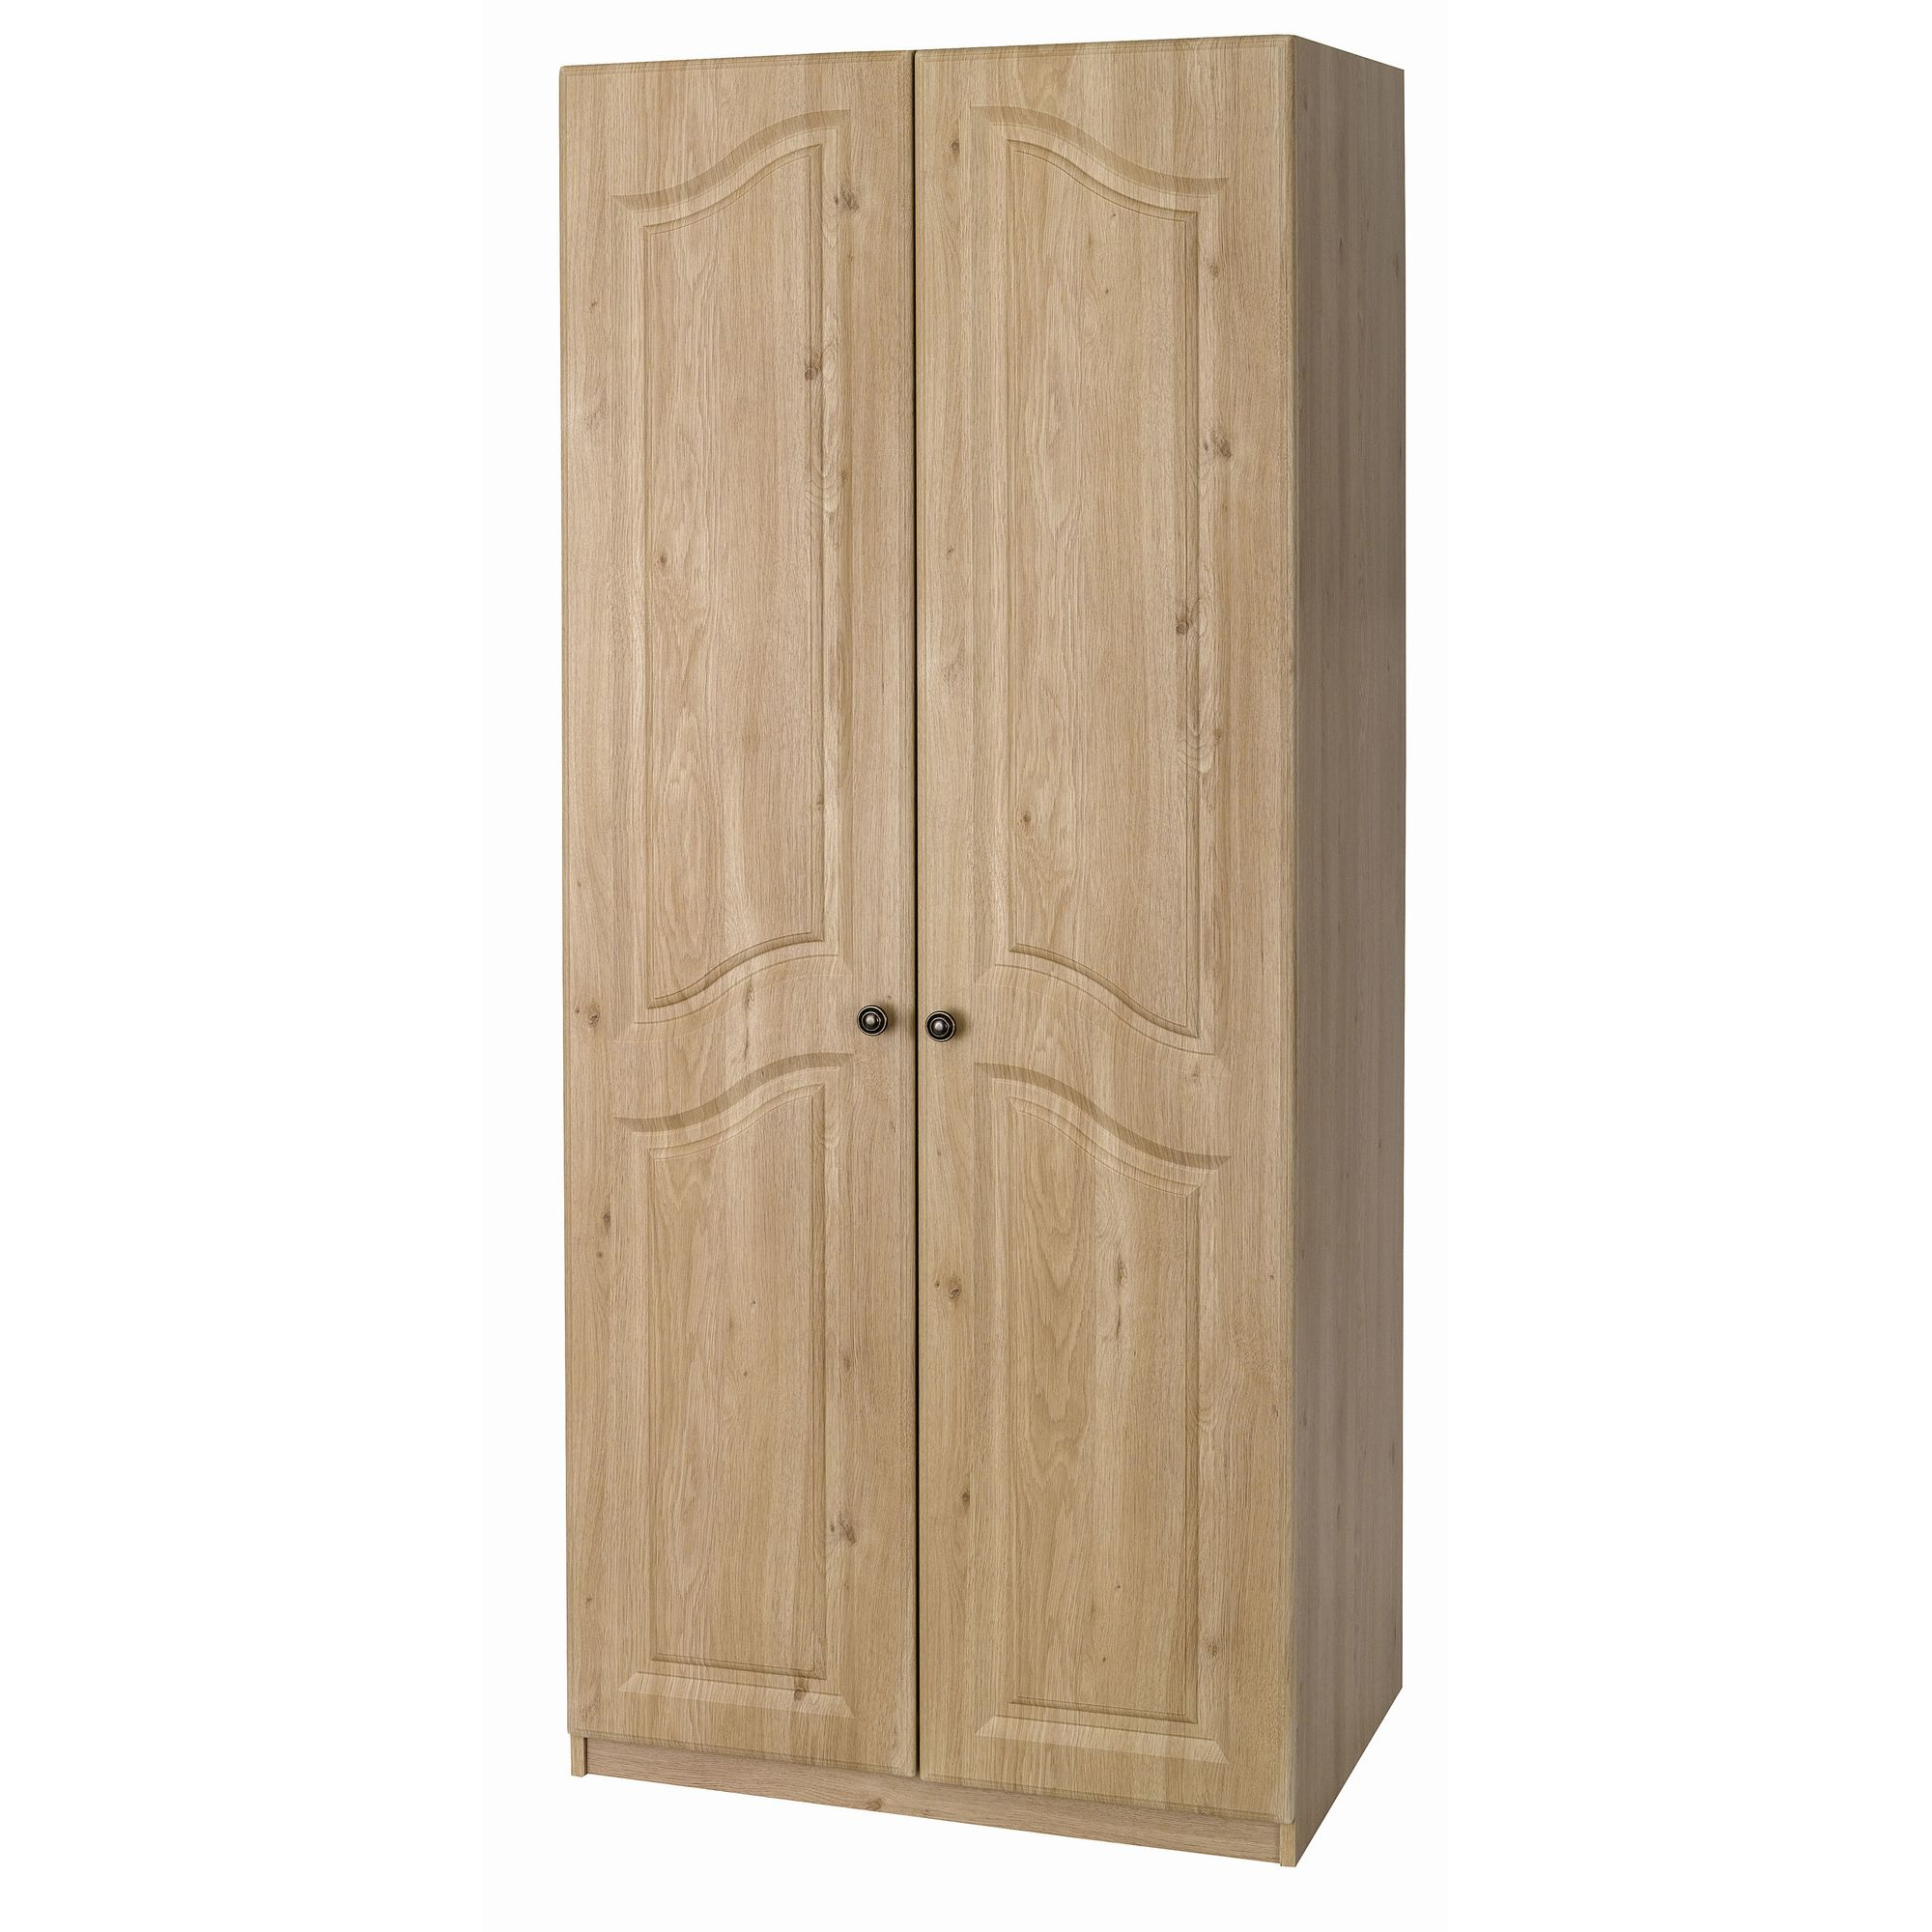 Alto Furniture Visualise Bordeaux Robe in Oak at Tesco Direct